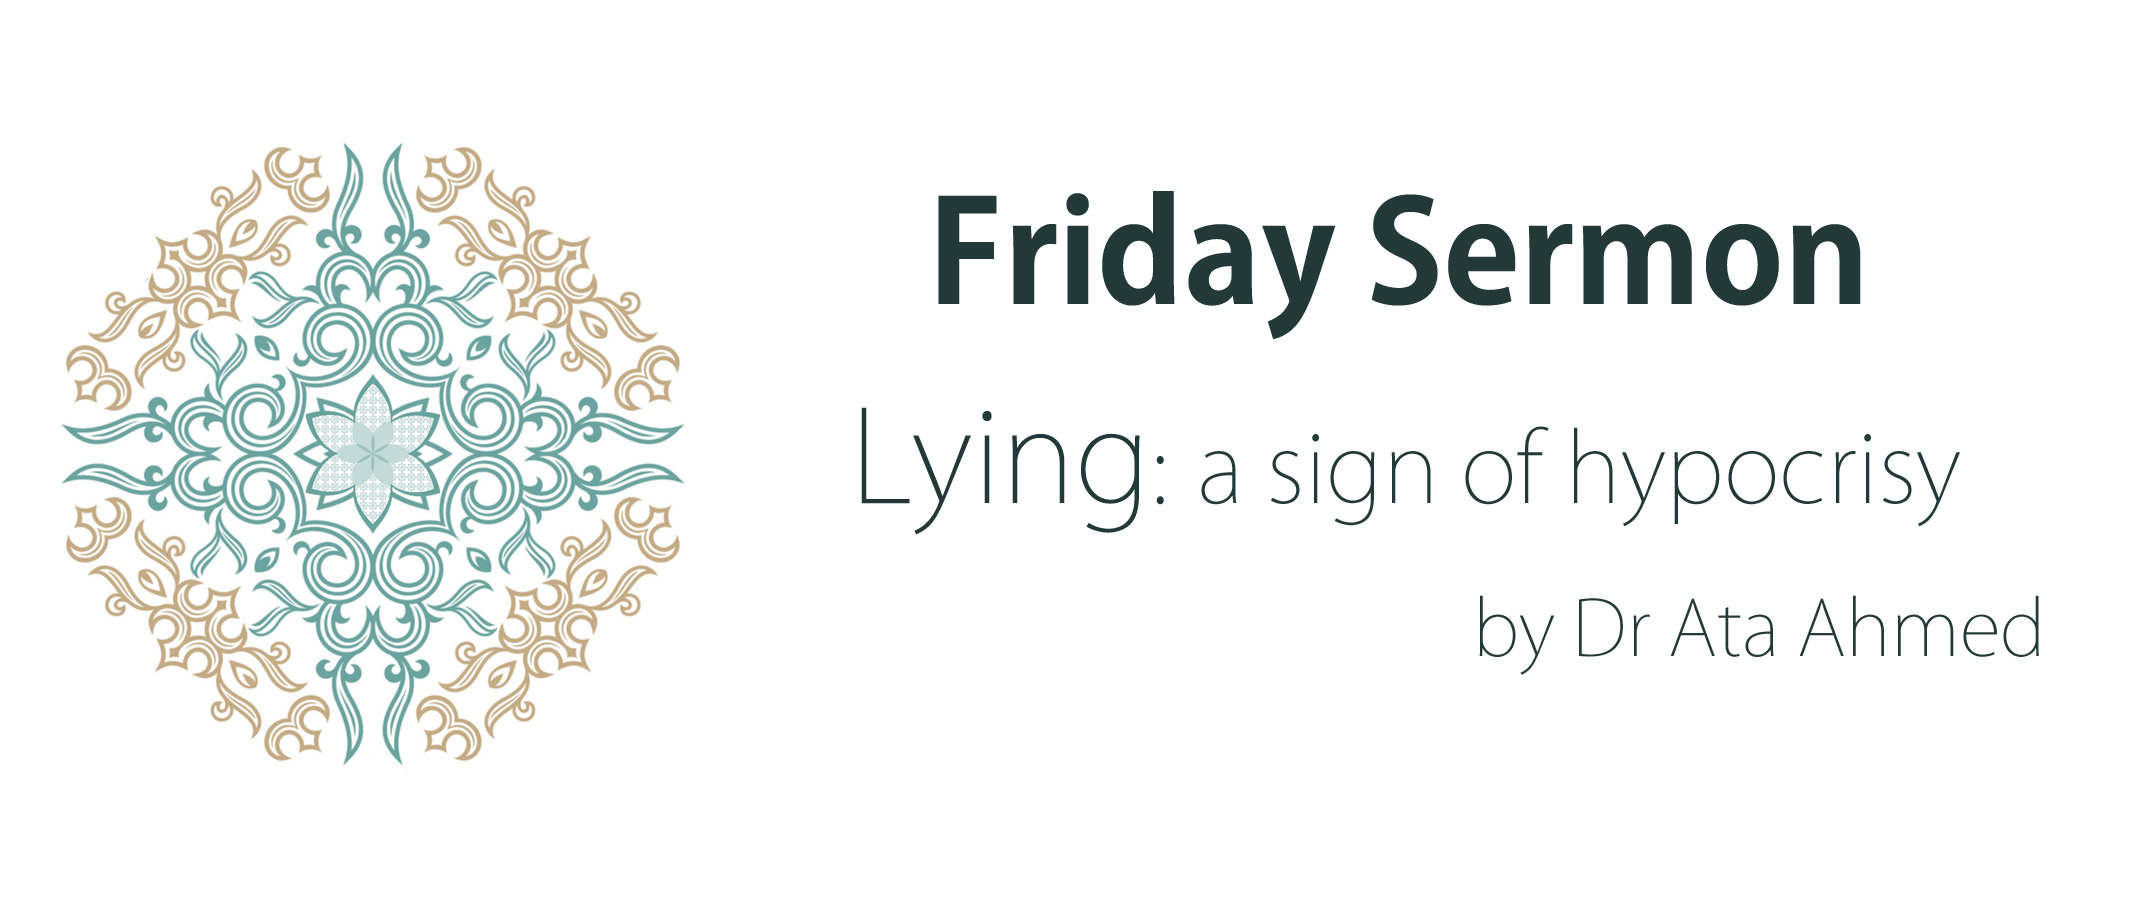 Friday Sermon: Lying: A sign of hypocrisy